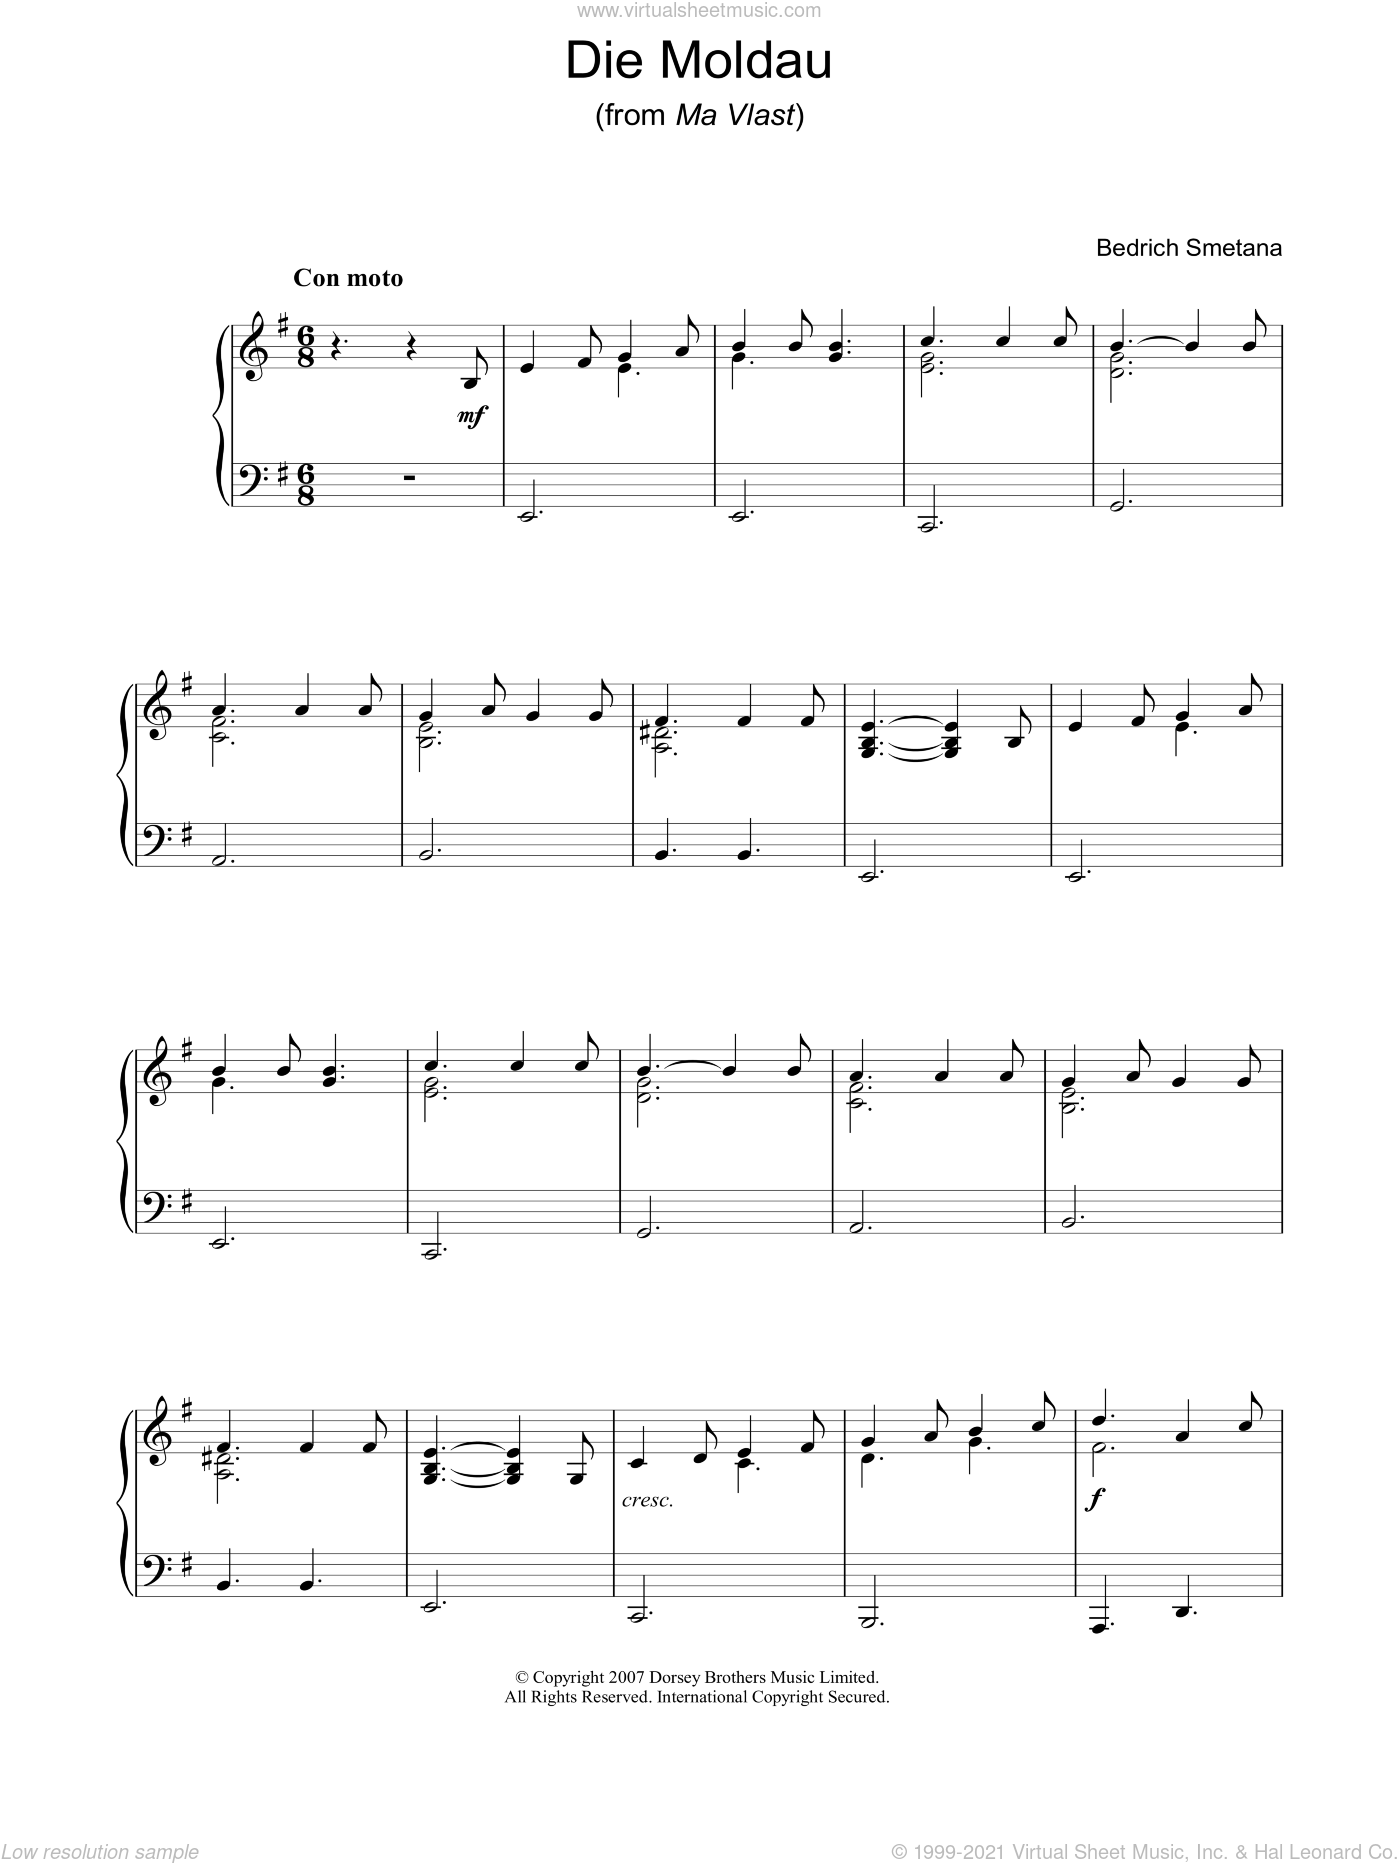 Die Moldau (from Ma Vlast) sheet music for voice, piano or guitar by Bedrich Smetana, classical score, intermediate. Score Image Preview.